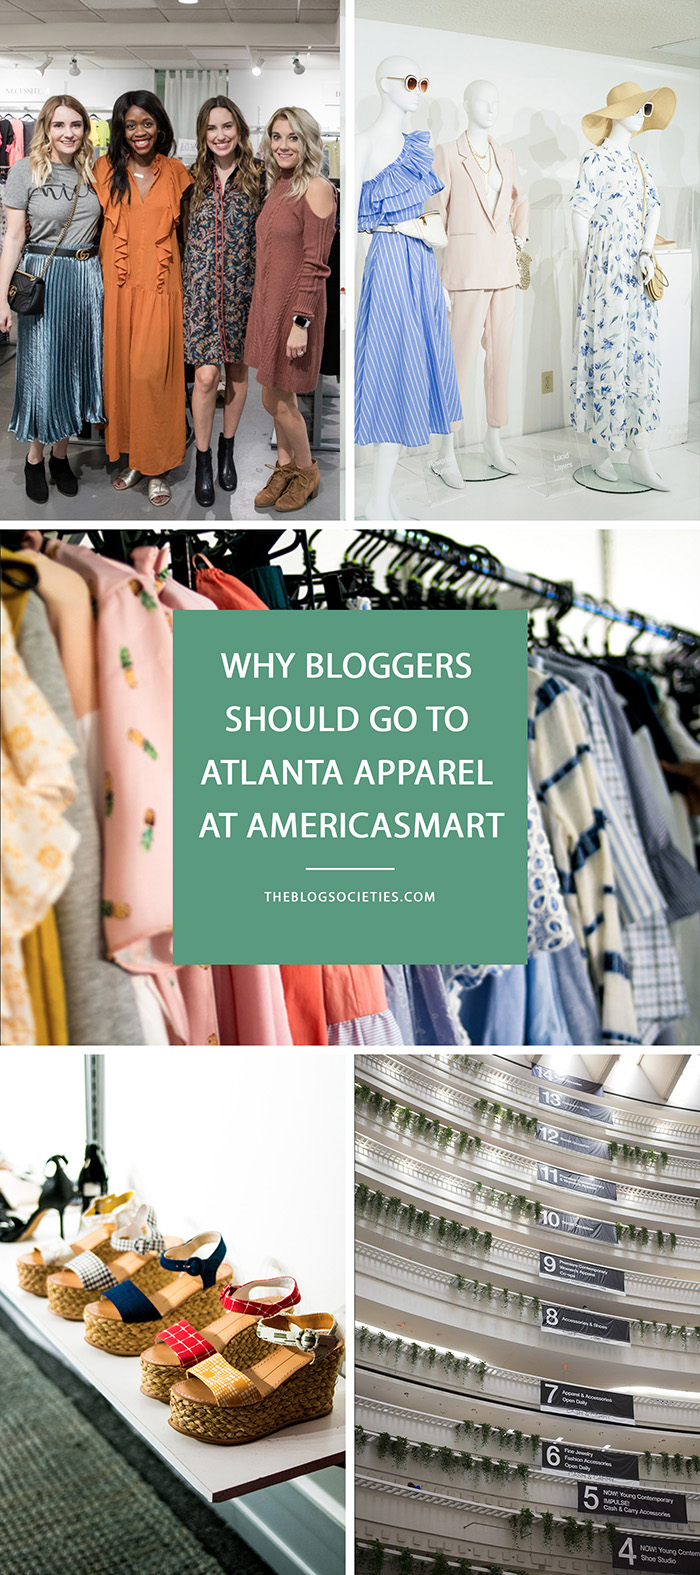 Why Bloggers Should Go To Atlanta Apparel At AmericasMart